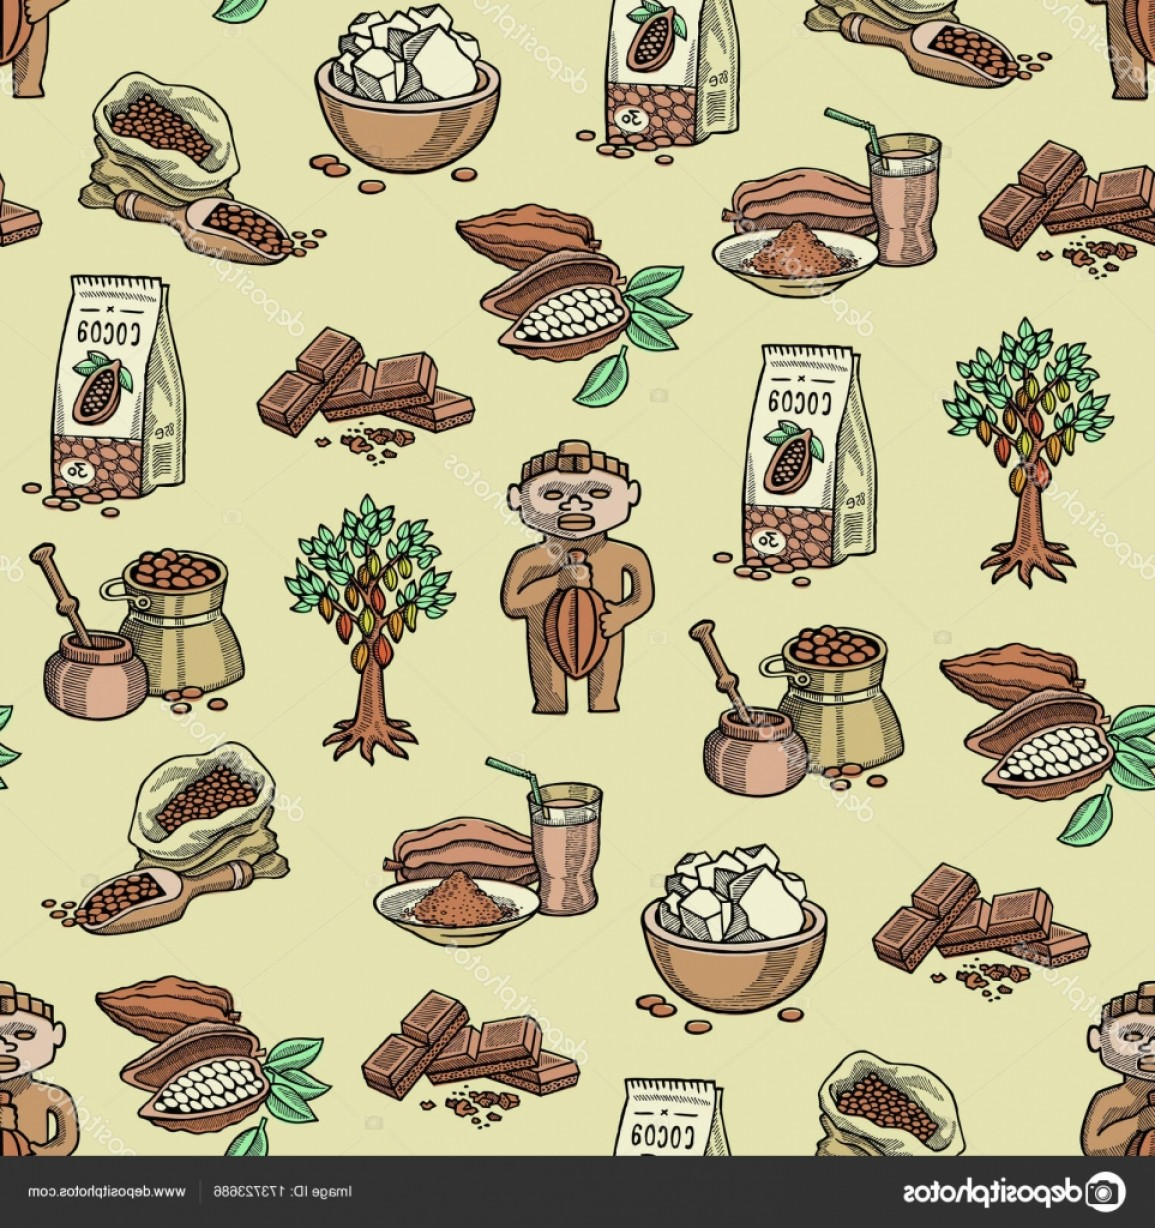 Chocolate Vector Plant: Stock Illustration Vector Cocoa Products Plantation Handdrawn